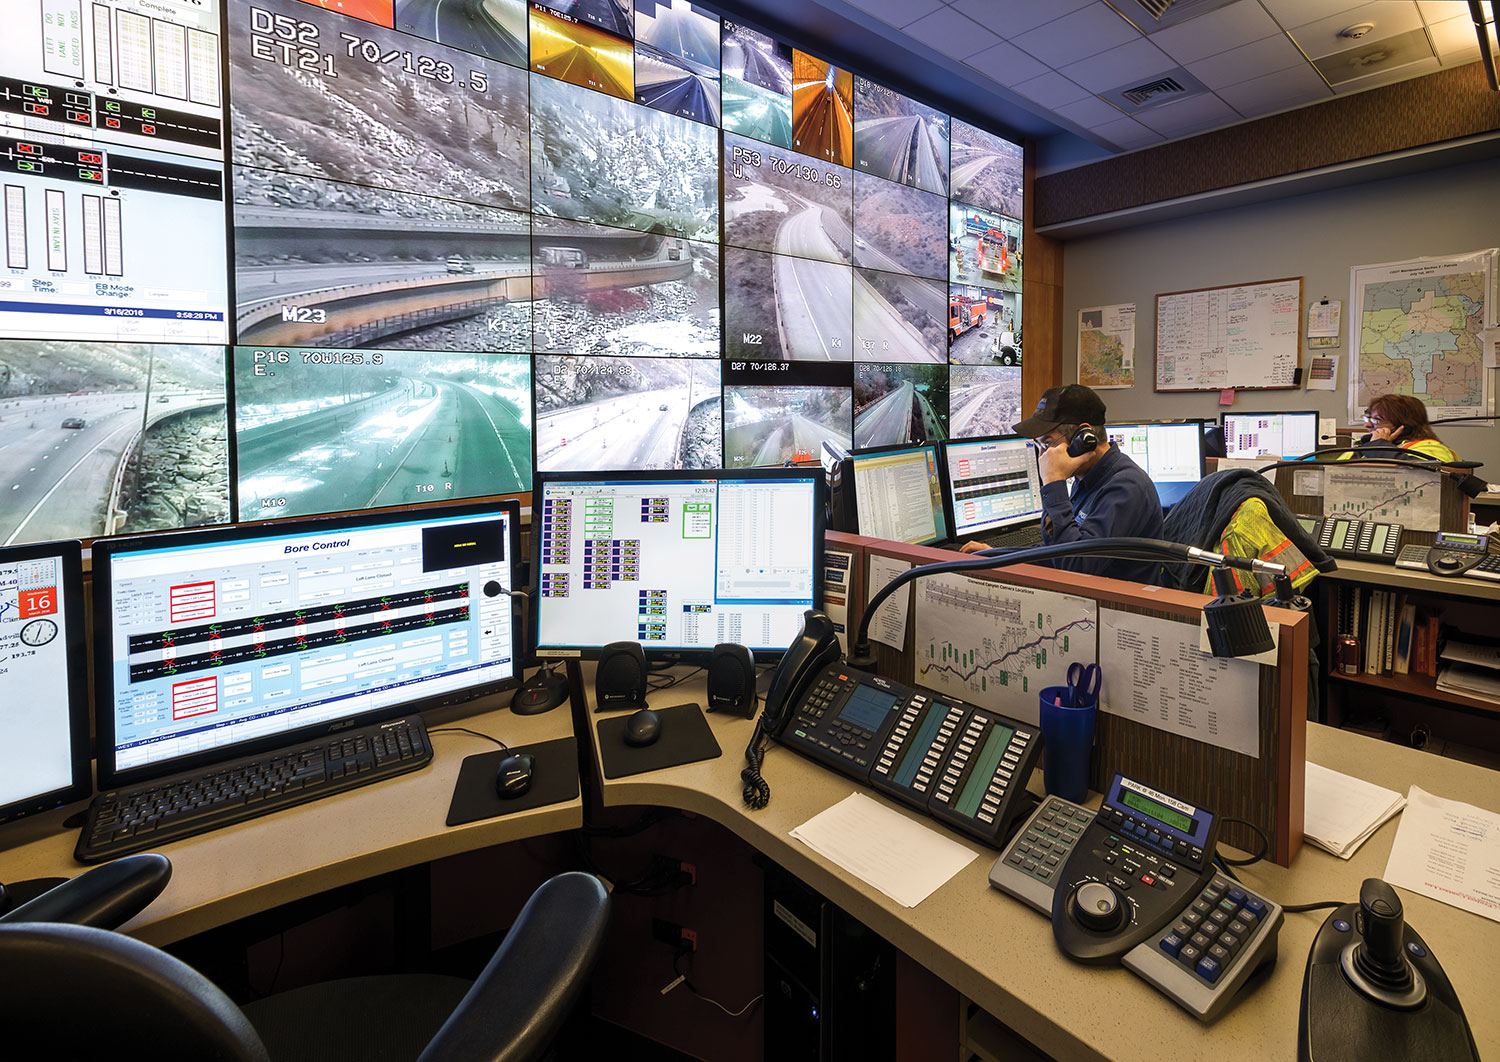 The operators manage the DCS in addition to radio communications with fire departments, law enforcement and maintenance news. This centralized approach ensures that seamless communication is possible for all responding agencies.